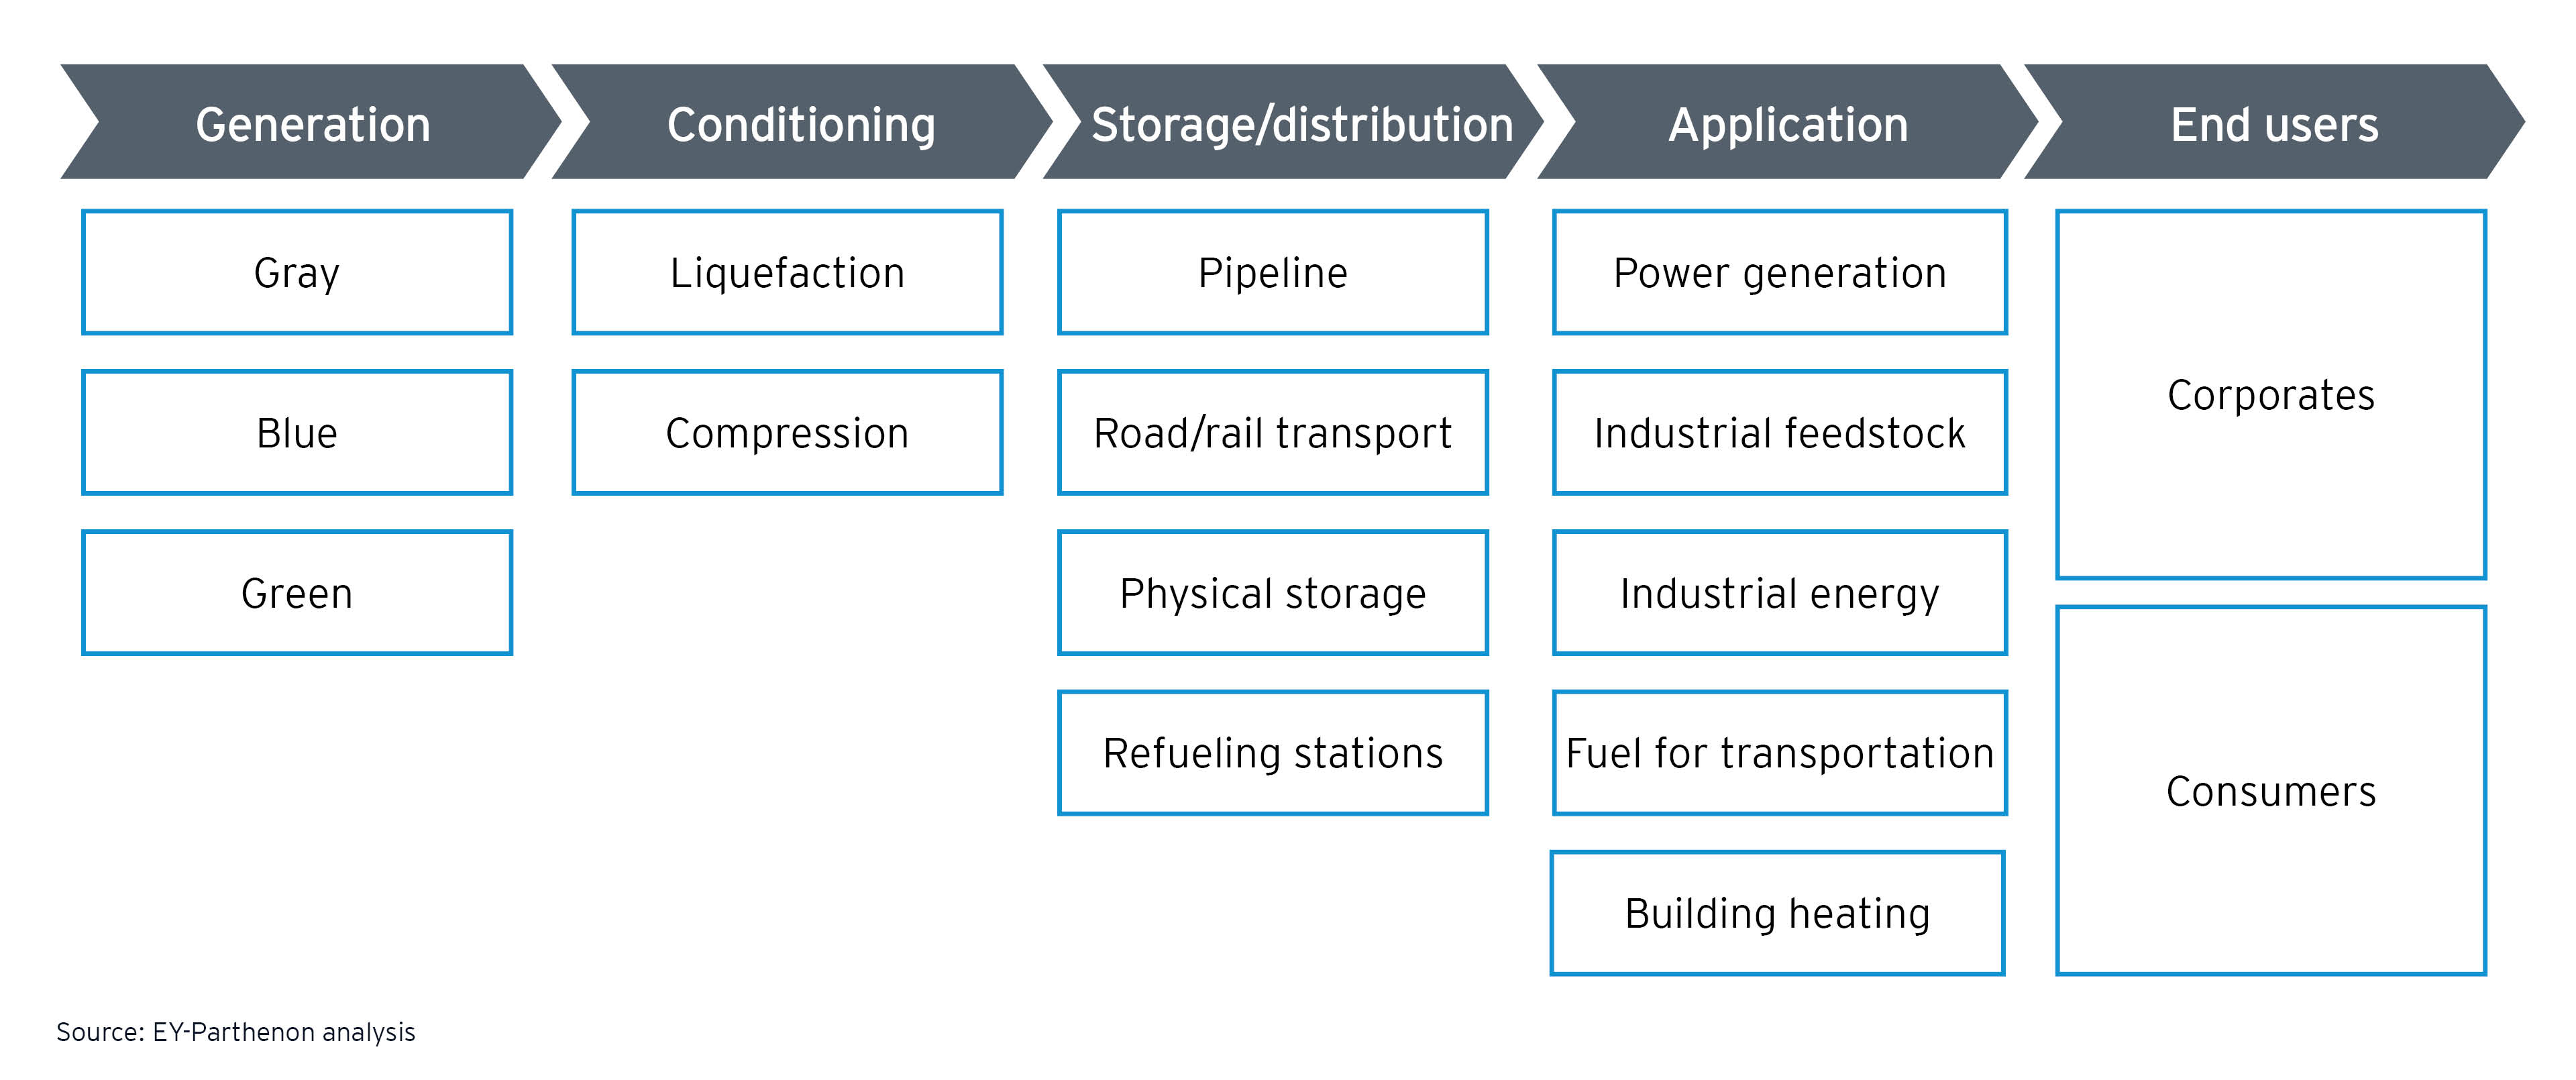 Figure 1: Overview of hydrogen value chain